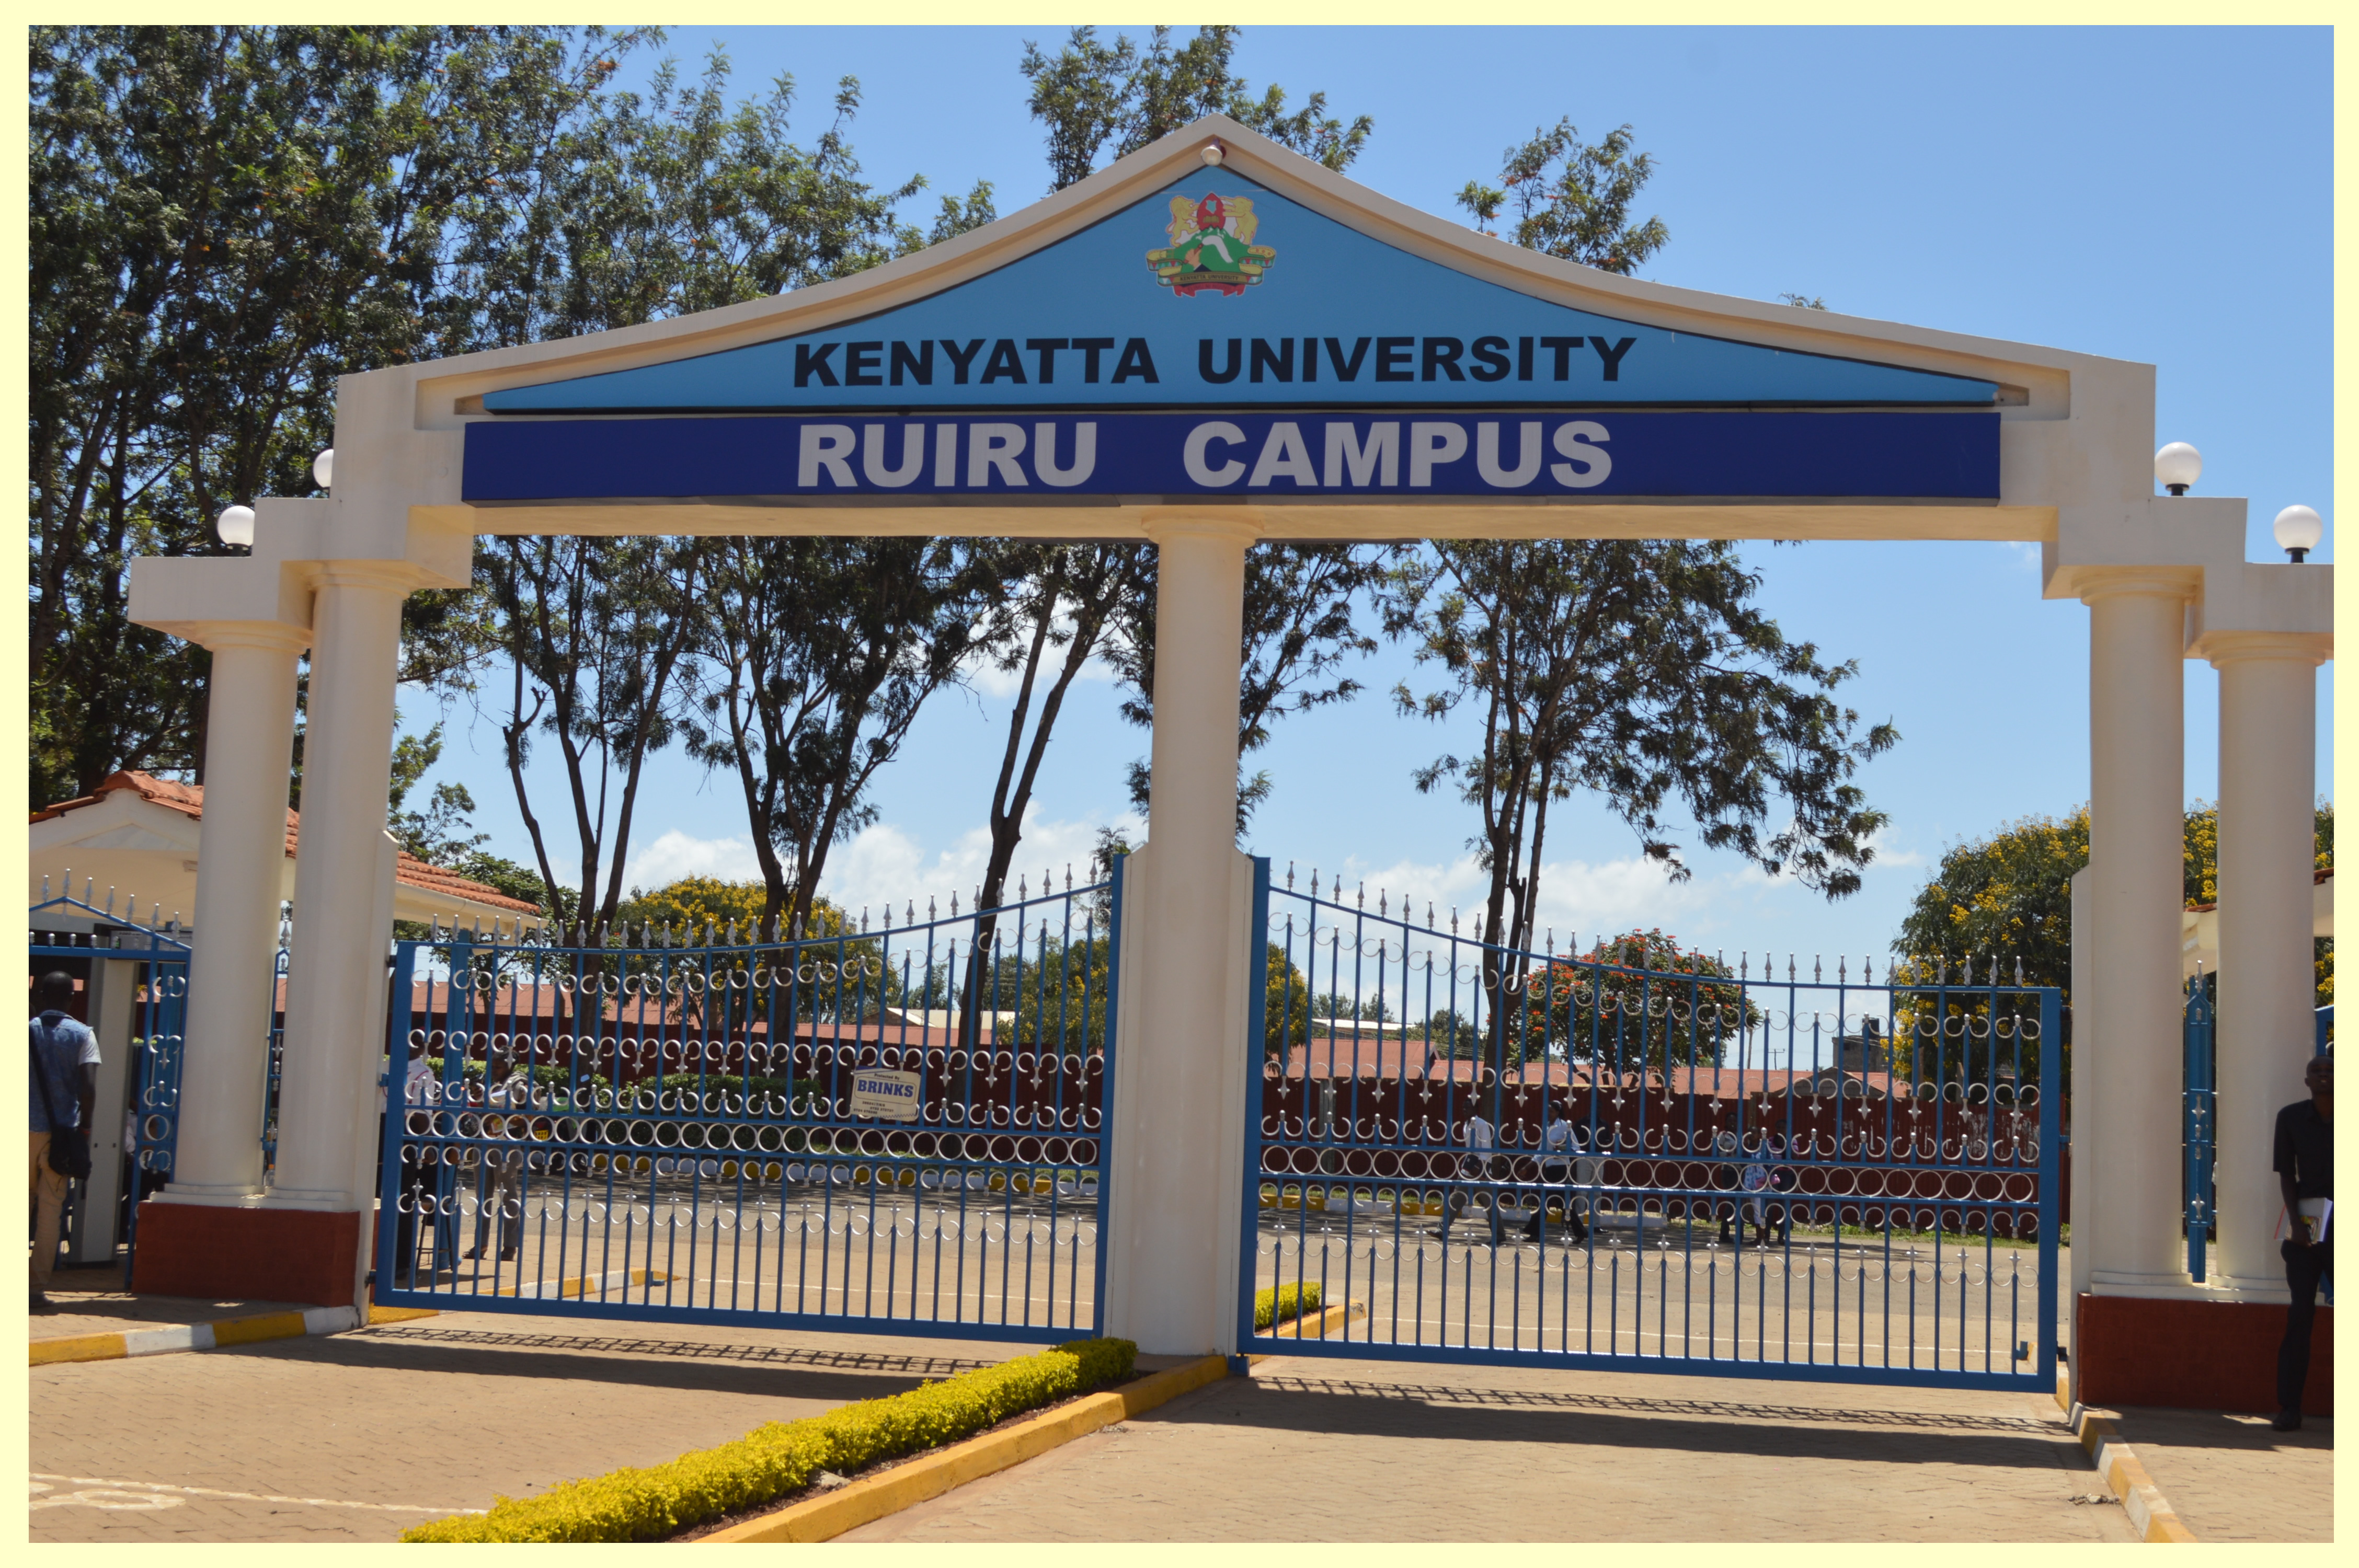 Kenyatta University  Ruiru Campus. Family Law Solicitors London. Top Credit Rating Agencies What Is The Range. Call List For Telemarketers Us Garage Doors. Cheap Internet Providers Remote Pc Monitoring. Newborn Green Diarrhea Pdf Display In Browser. New York Life Insurance Reviews. Clustering Algorithms In Data Mining. Fha Non Owner Occupied Loans